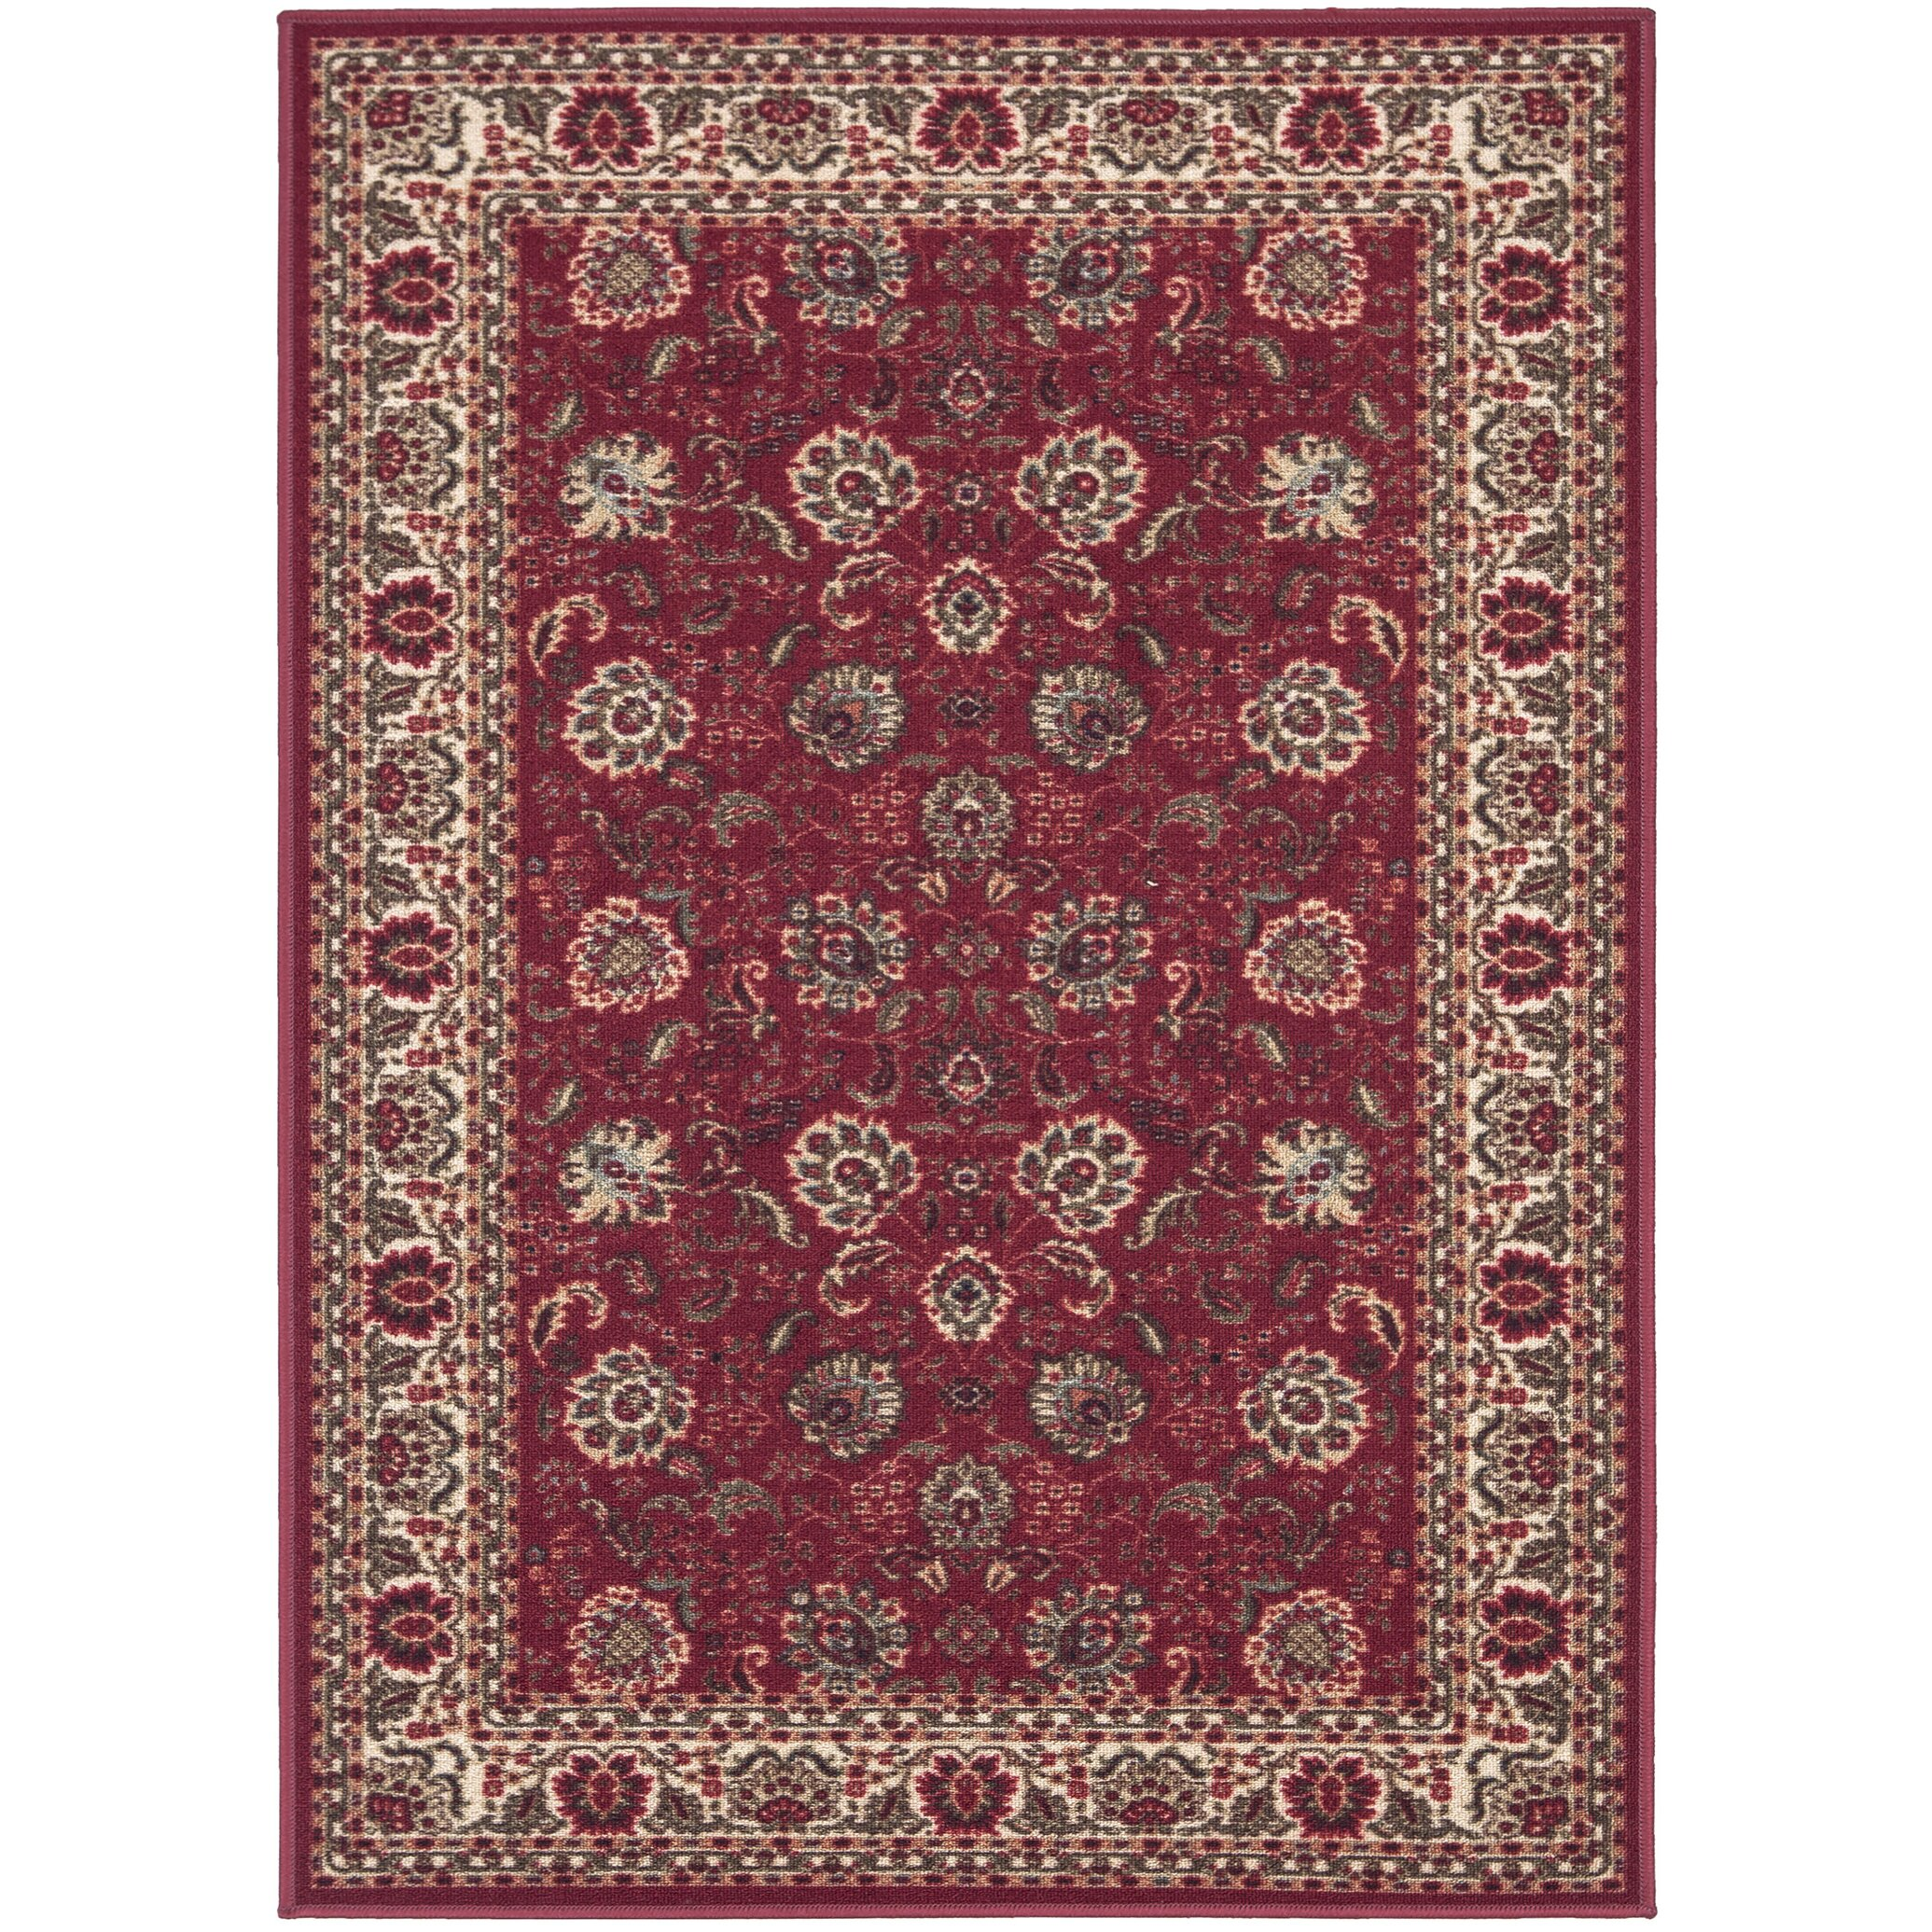 Ottomanson ottohome dark red floral area rug reviews for Red floral area rug